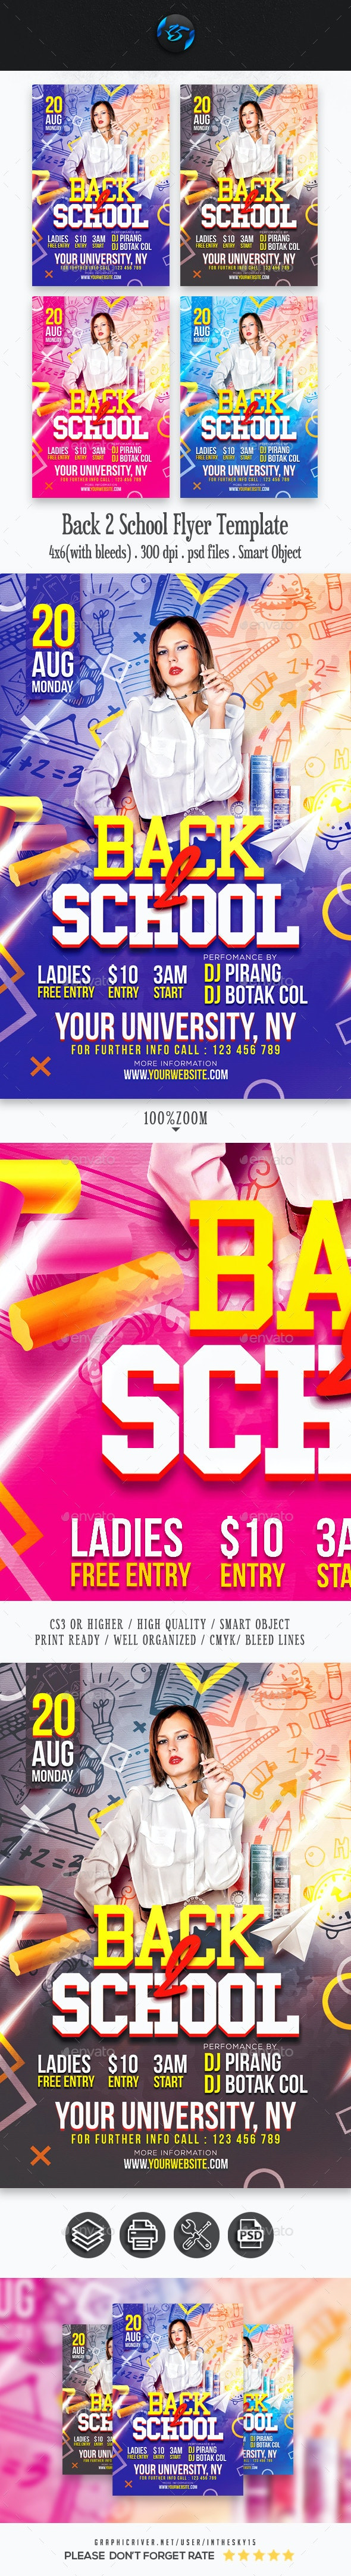 Back 2 School Flyer Template - Events Flyers